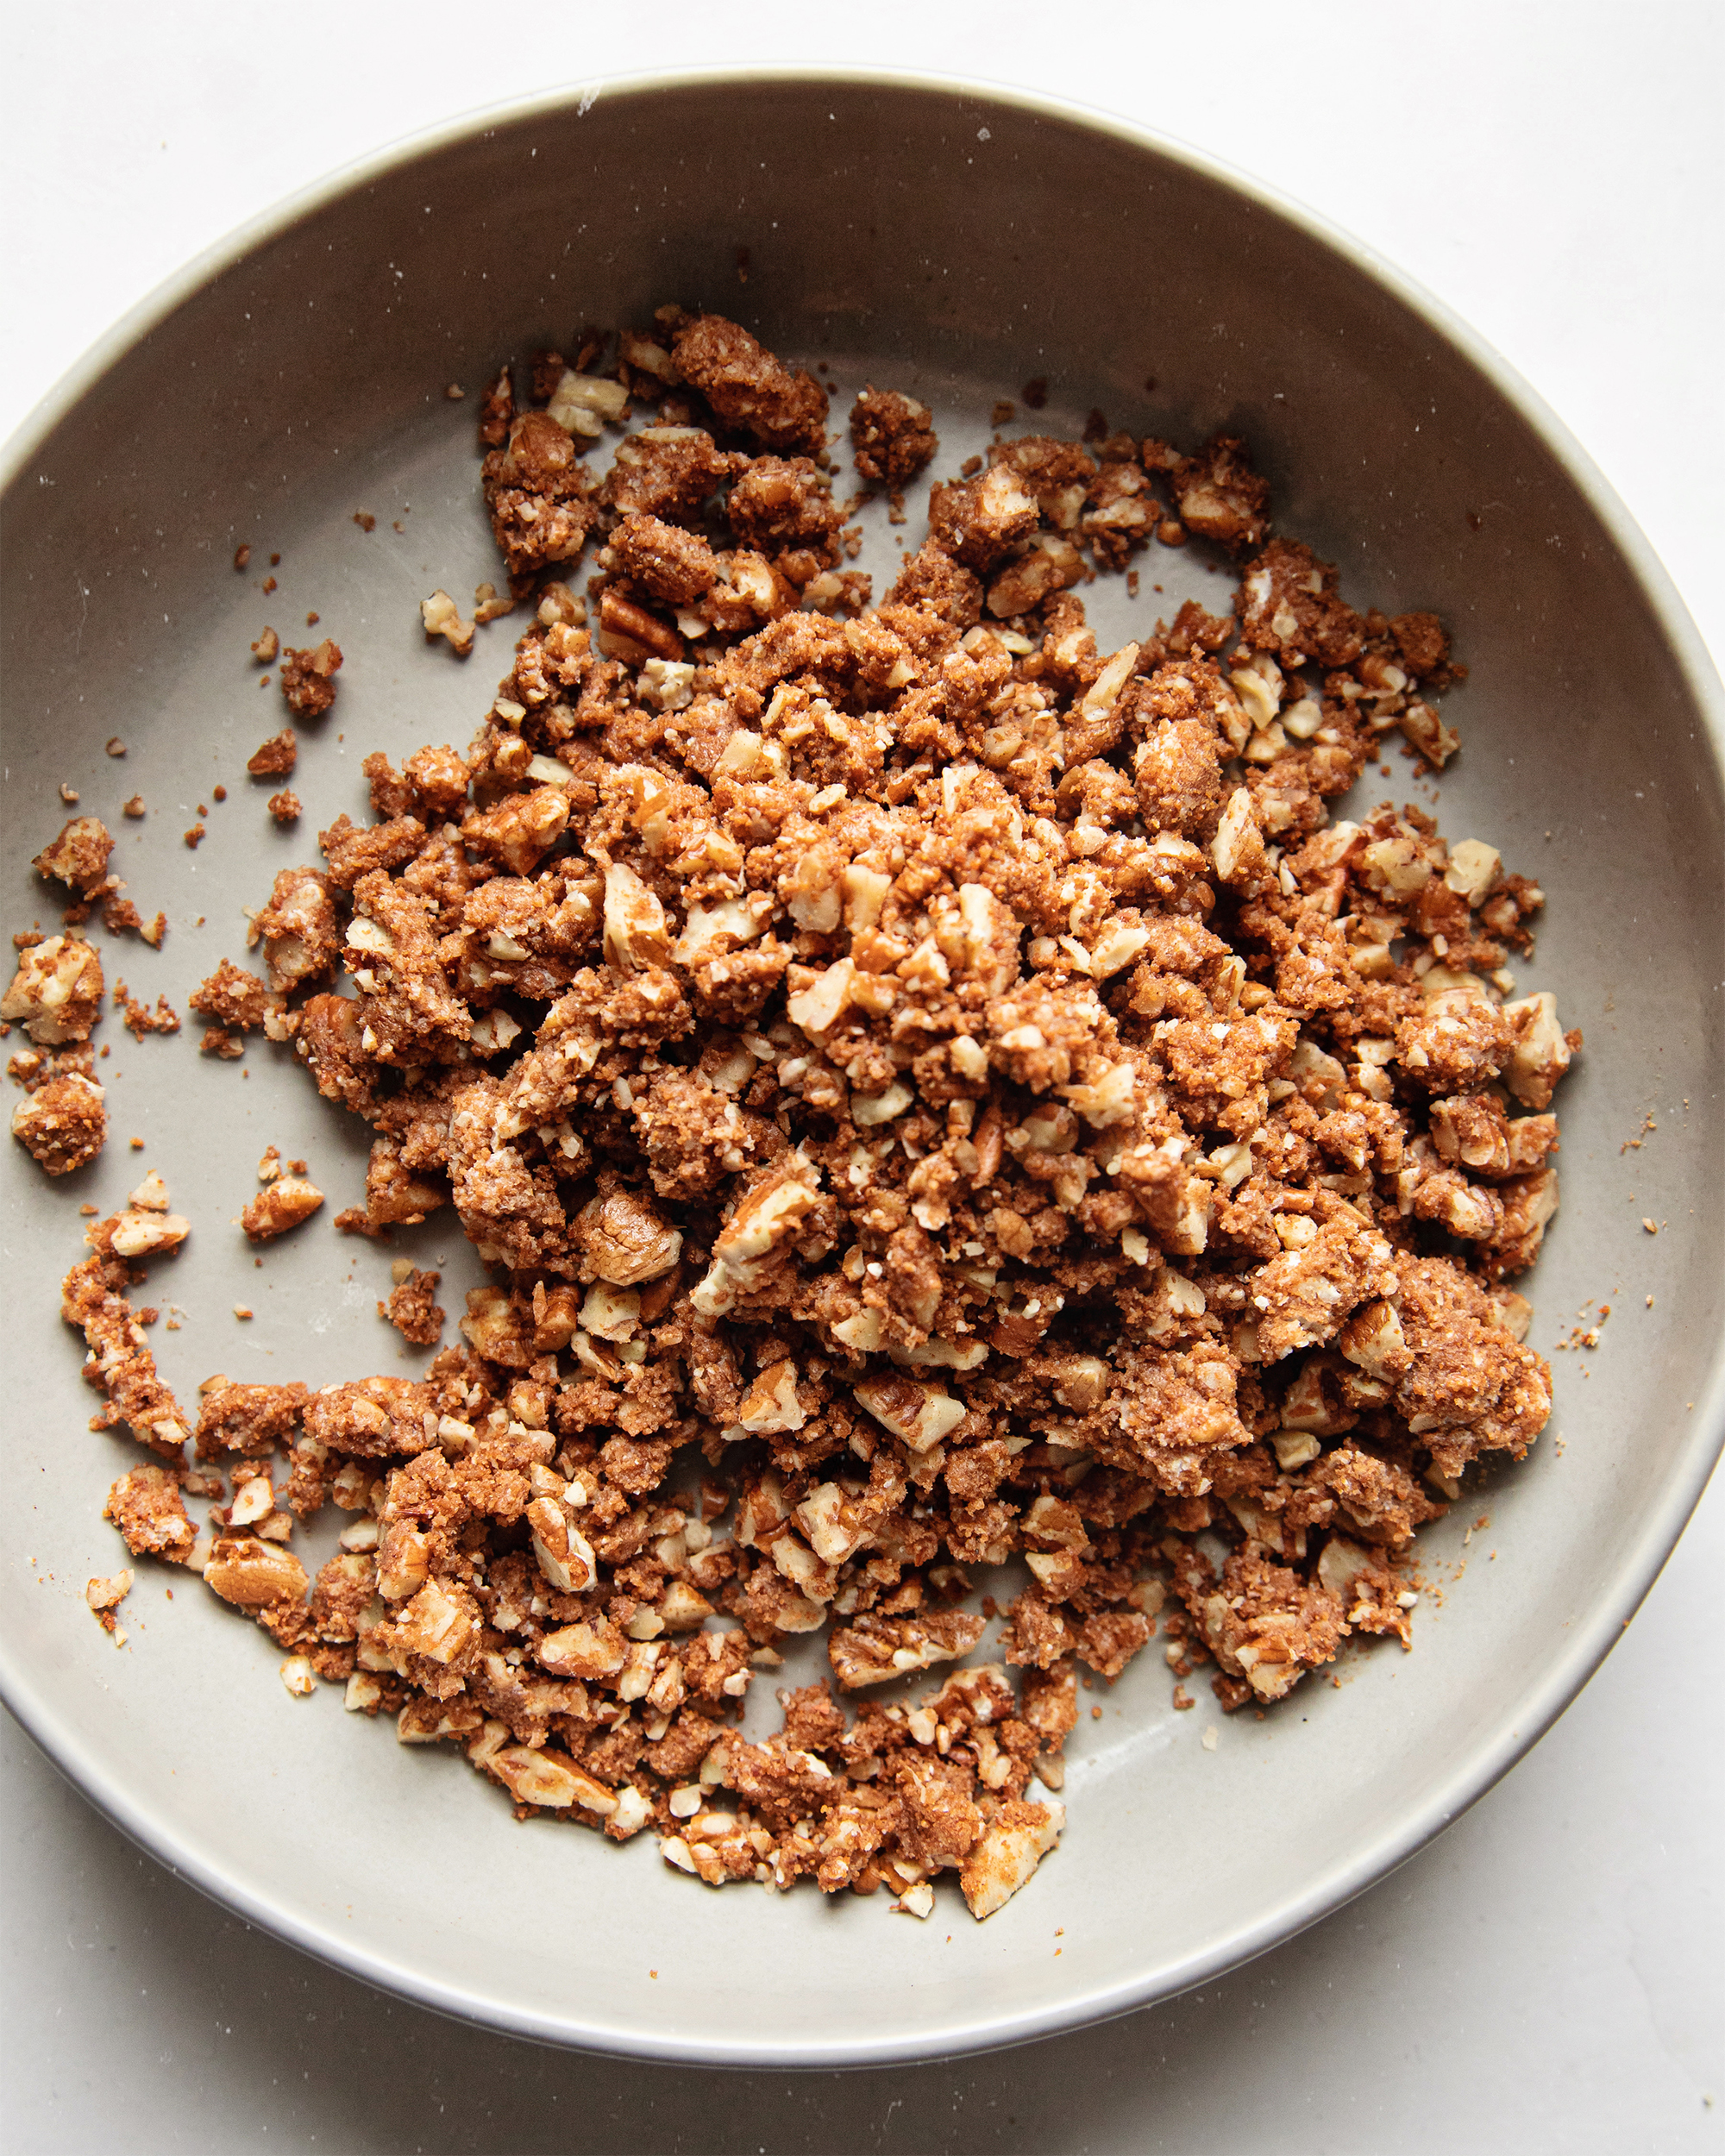 AN overhead shot of finished pecan streusel in a grey bowl on a white background.